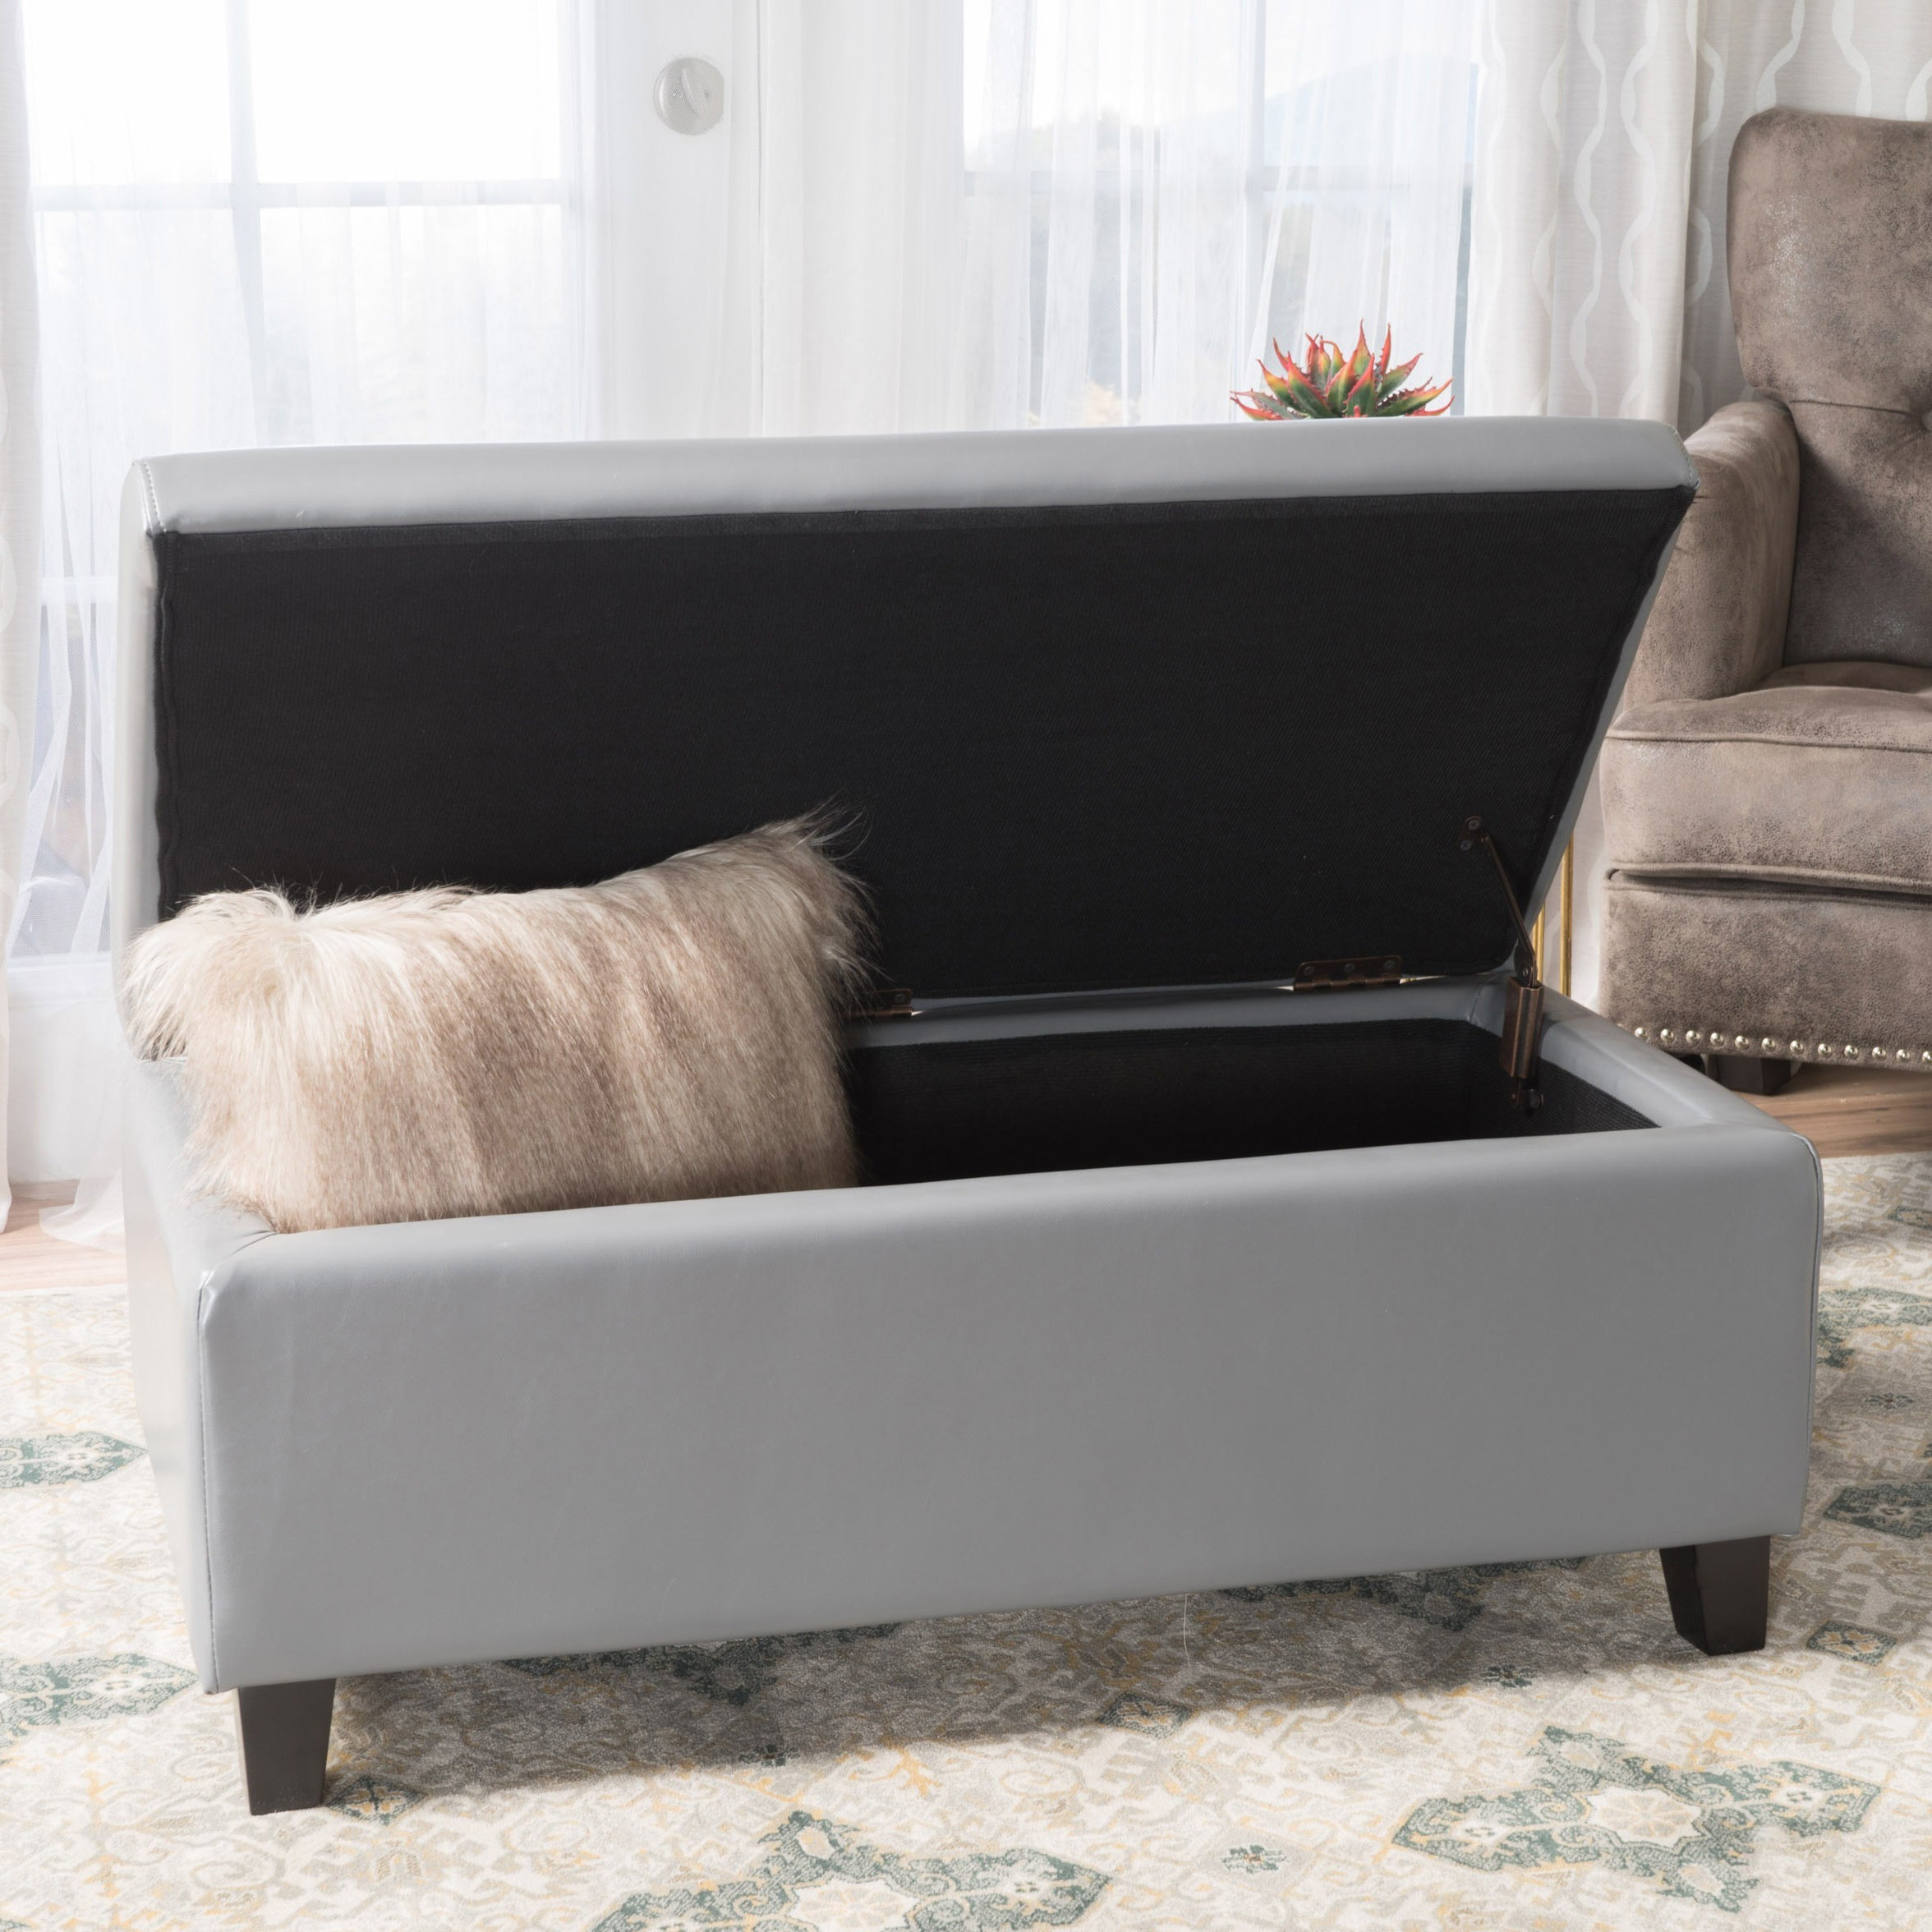 Breanna Contemporary Upholstered Storage Ottoman By Christopher Knight Home Overstock 14086656 Teal